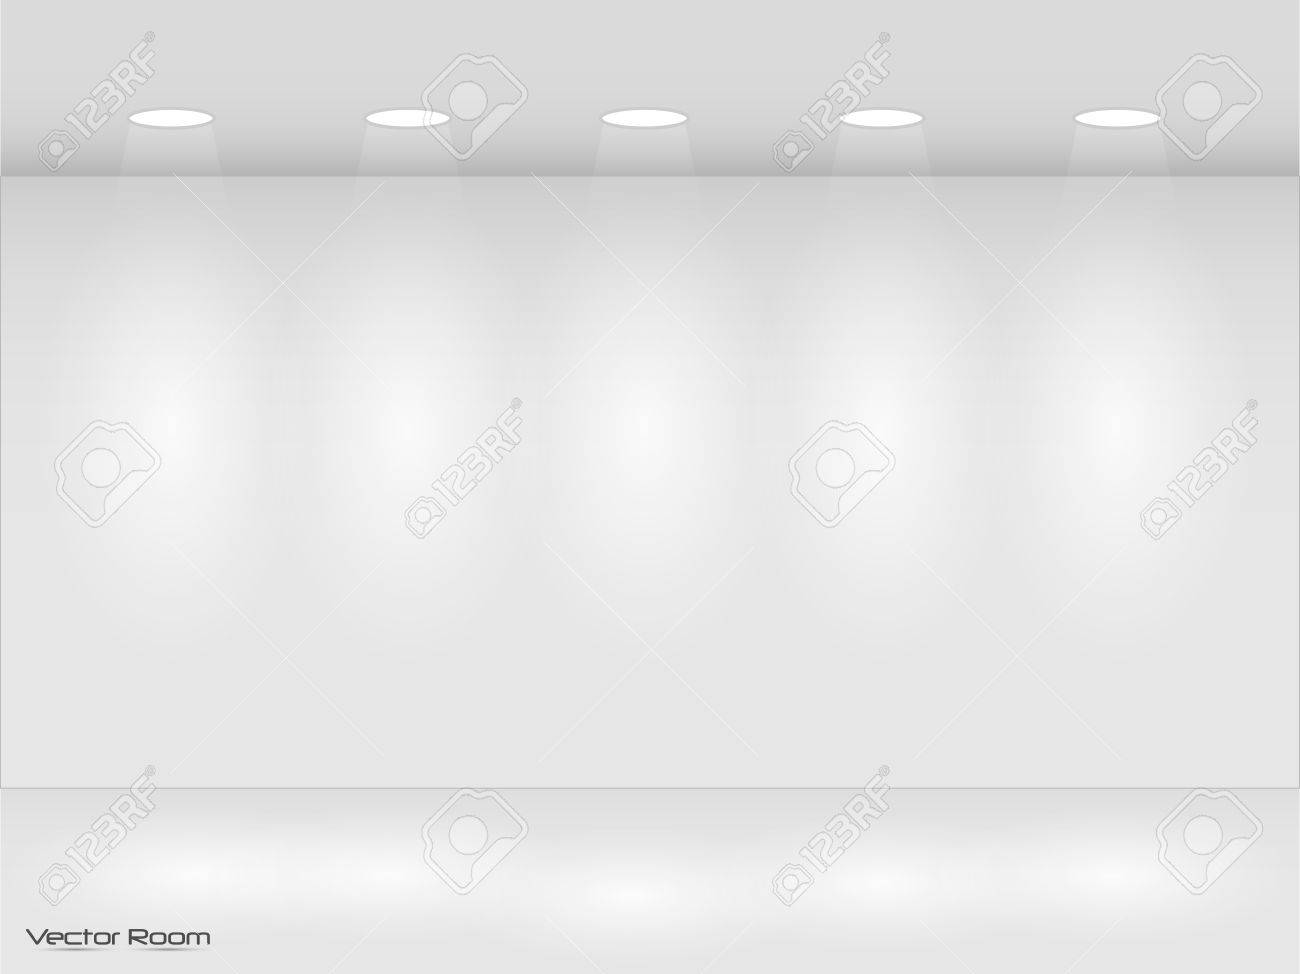 Illustration of room with lights. - 27194886